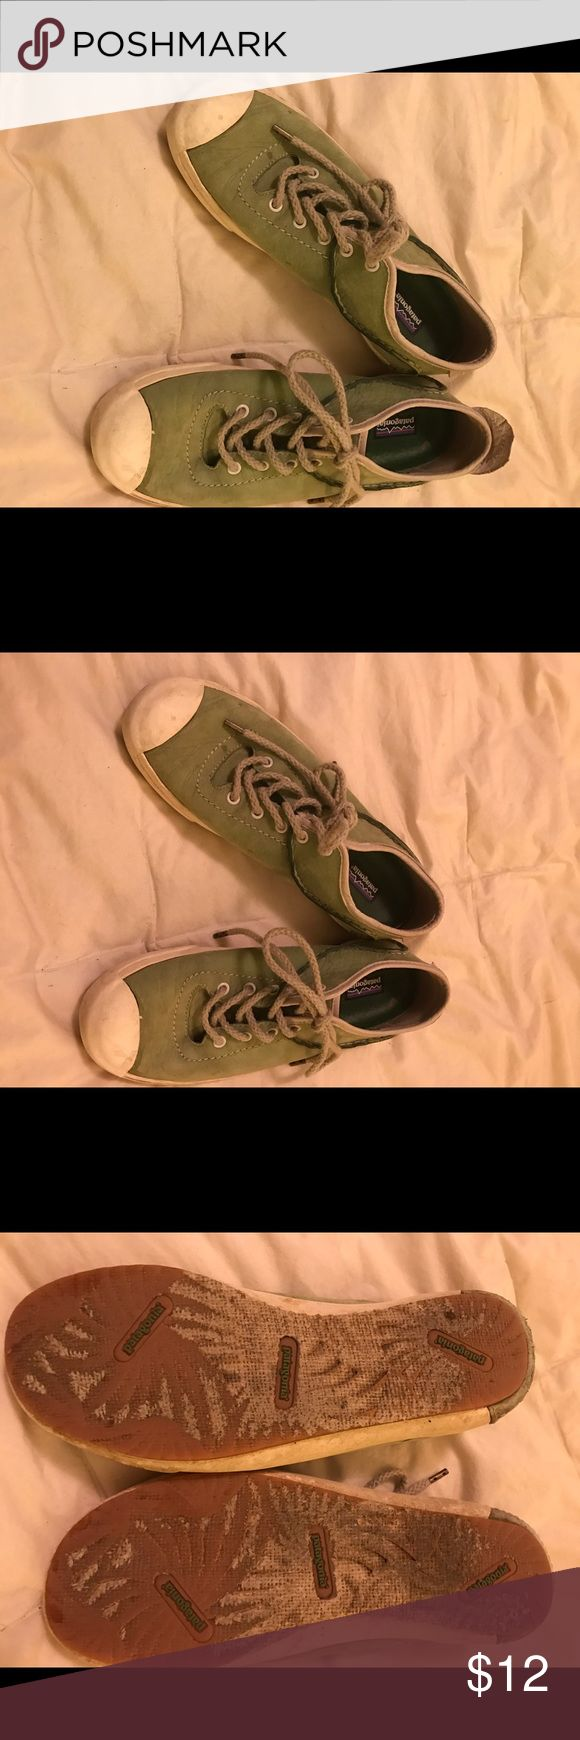 Patagonia shoes size 8 Great condition Patagonia shoes size 8 green Patagonia Shoes Sneakers